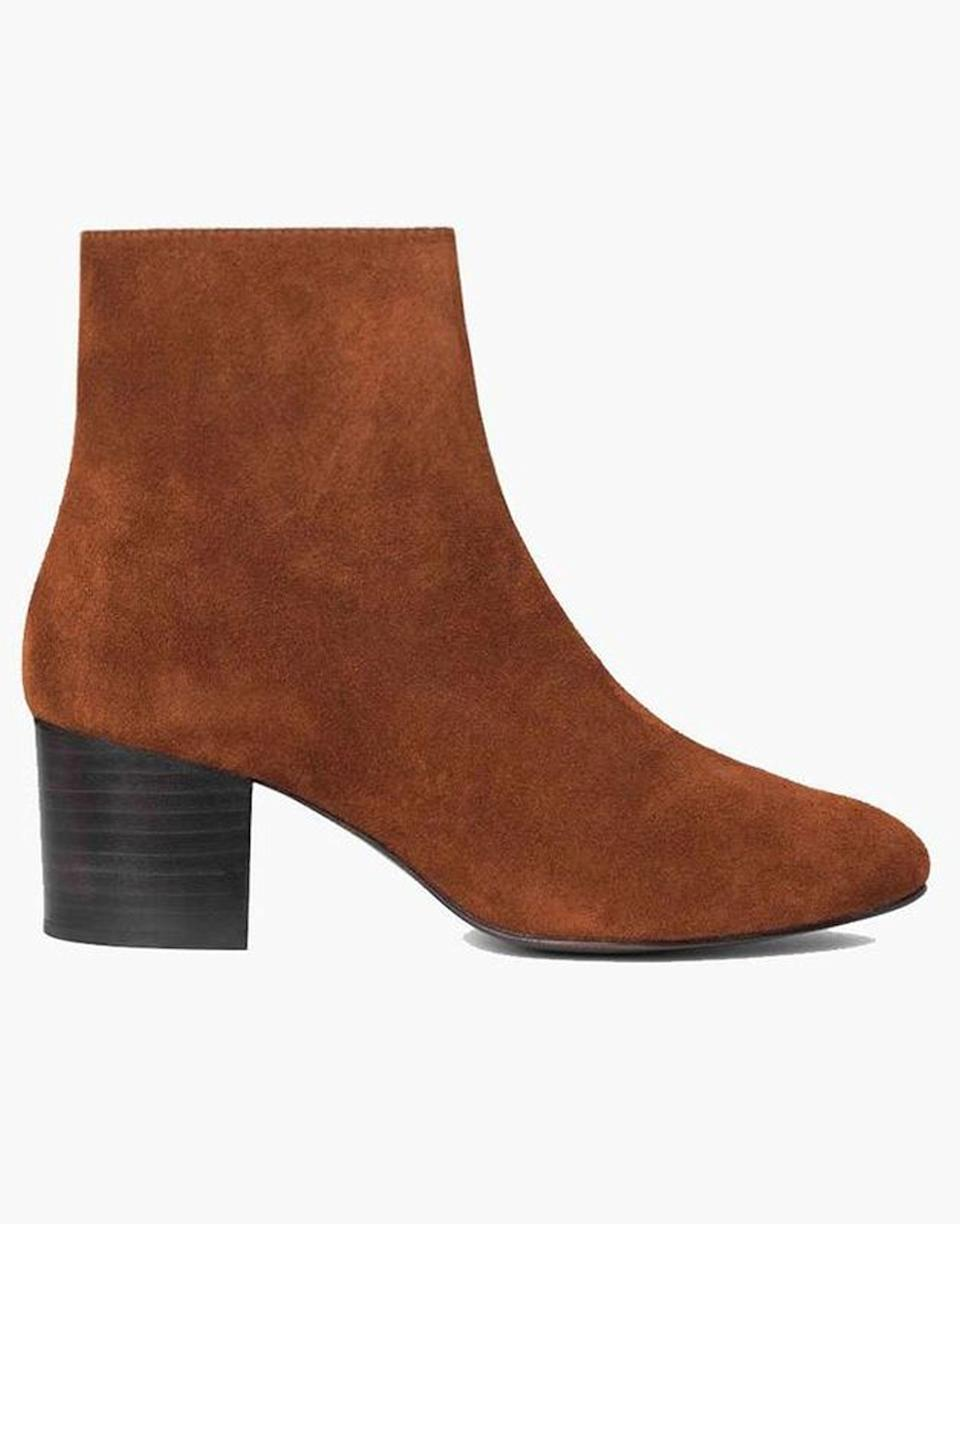 "<p>thursdayboots.com</p><p><strong>$180.00</strong></p><p><a href=""https://thursdayboots.com/products/womens-paloma-boot-spice-suede?collection=womens-boots-booties"" rel=""nofollow noopener"" target=""_blank"" data-ylk=""slk:Shop Now"" class=""link rapid-noclick-resp"">Shop Now</a></p><p>These fan-favorite suede boots are luxe enough for the office, and comfy enough for running weekend errands. </p>"